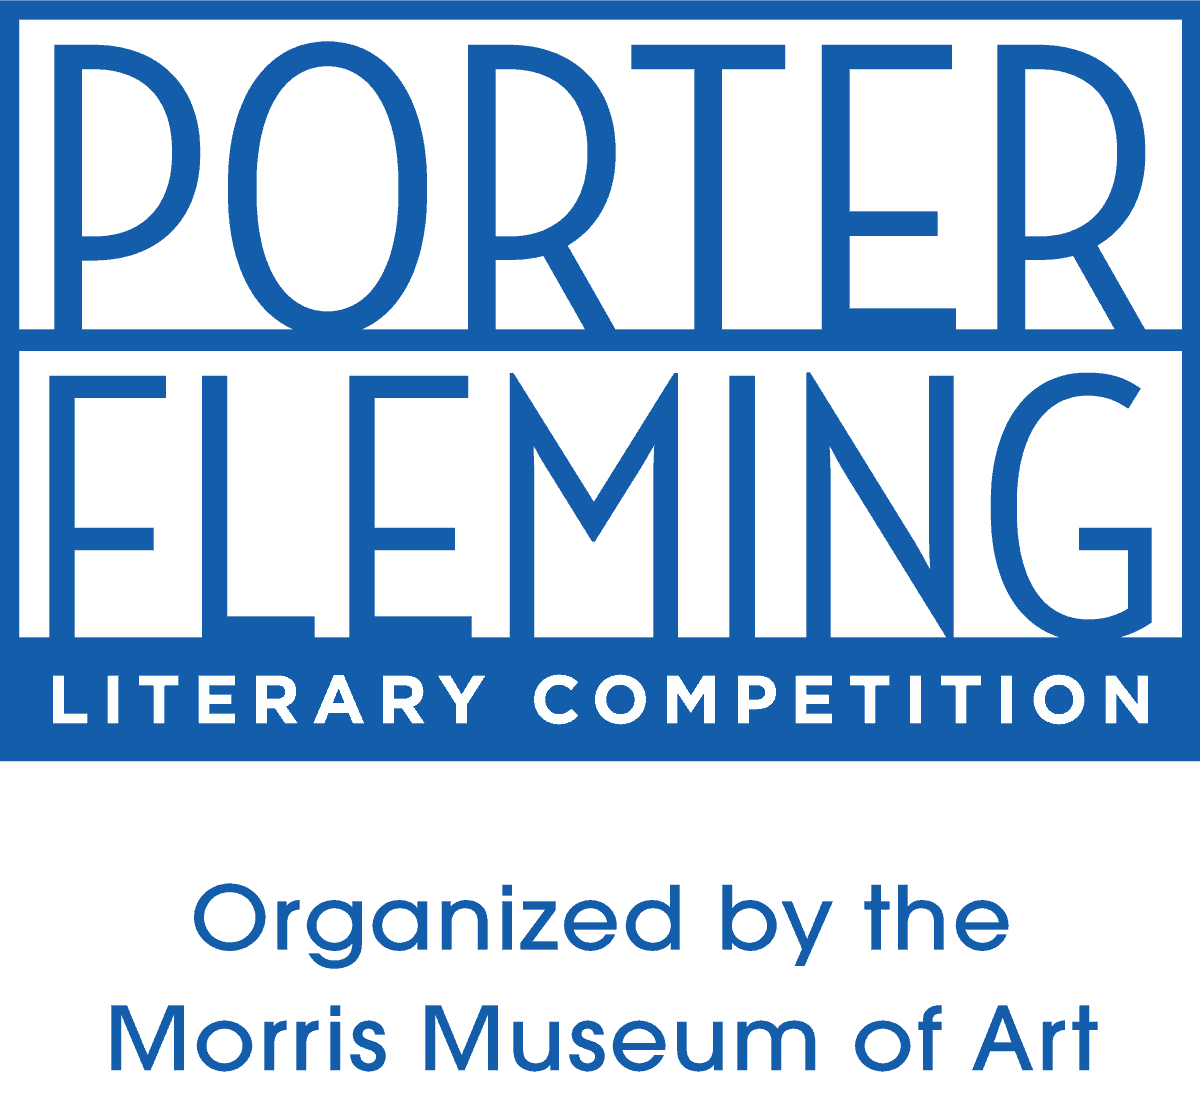 Porter Fleming Literary Competition - Organized by the Morris Museum of Art